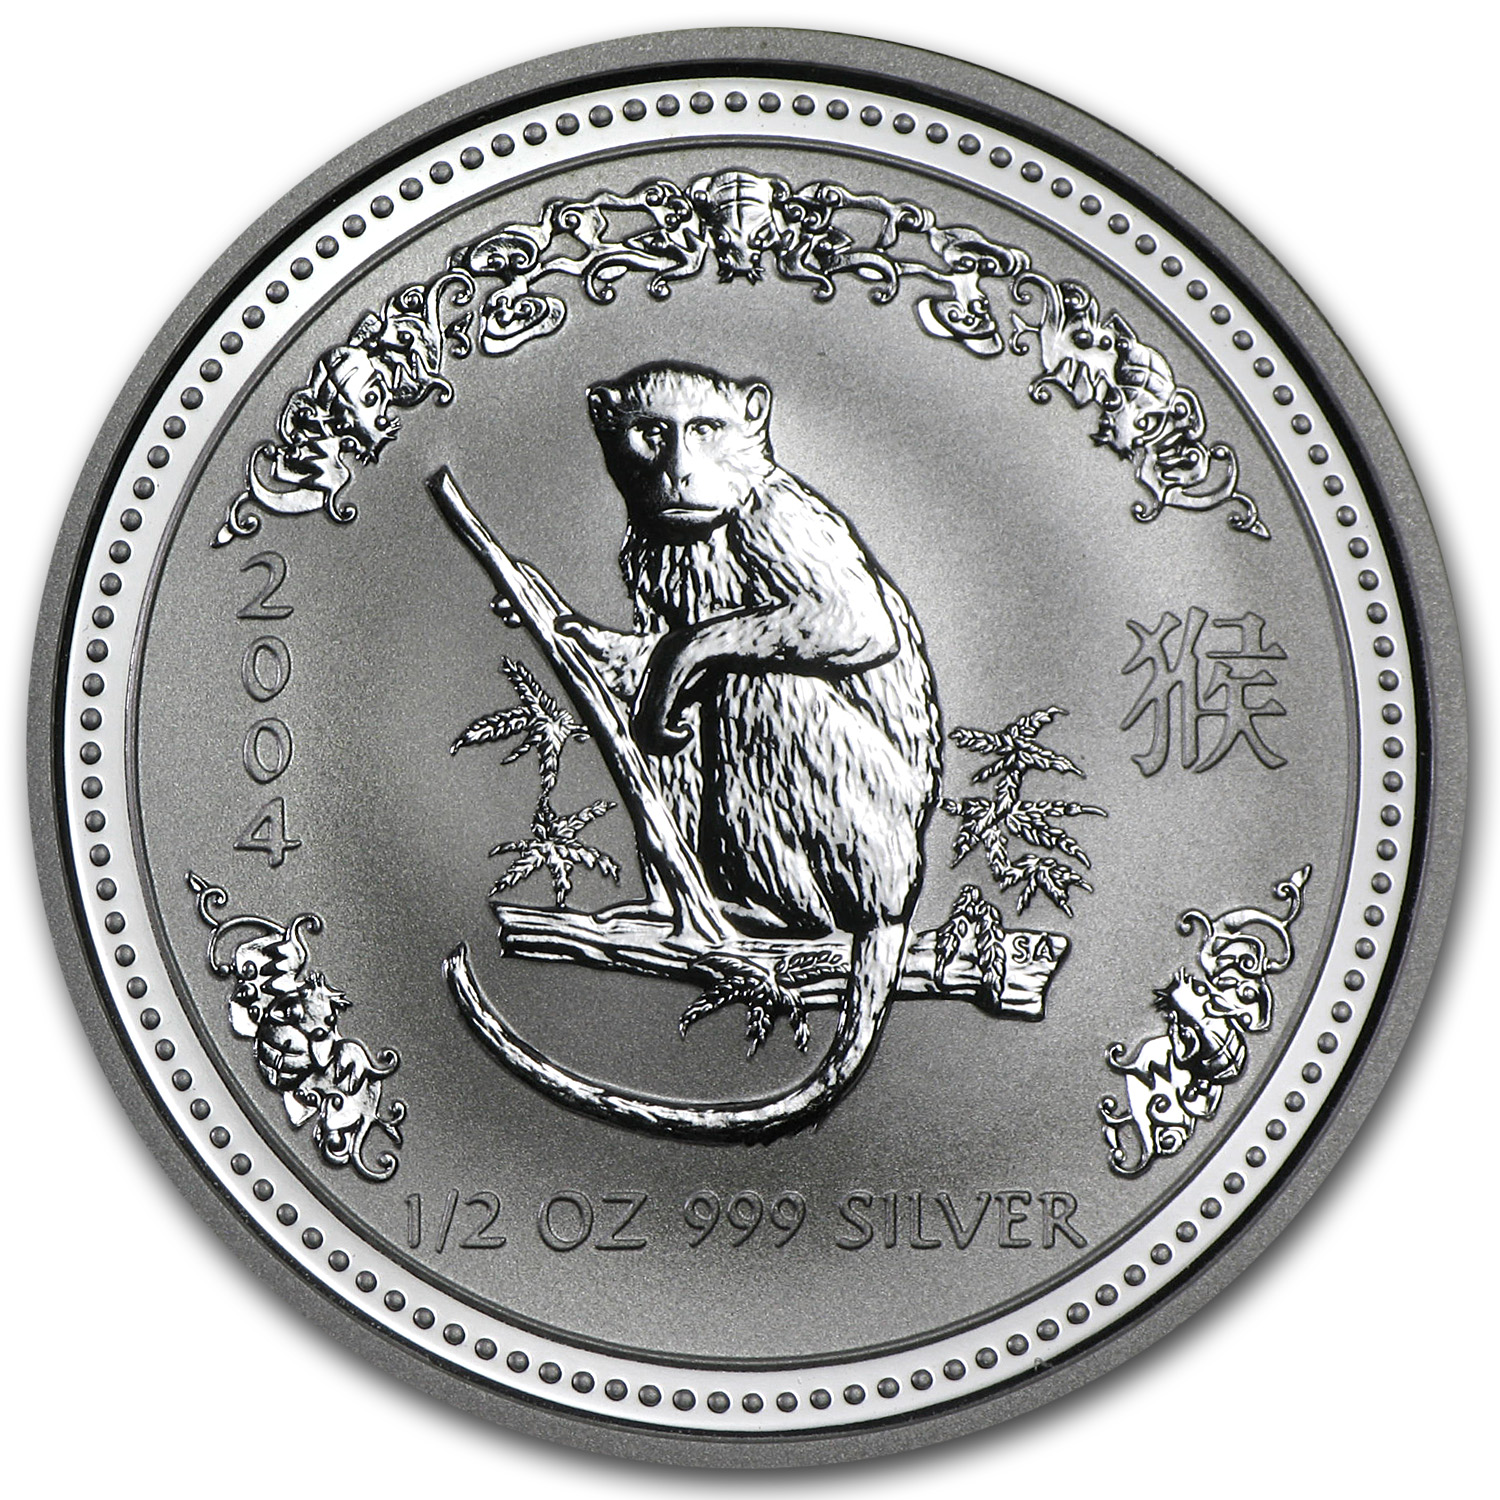 2004 Australia 1/2 oz Silver Year of the Monkey BU